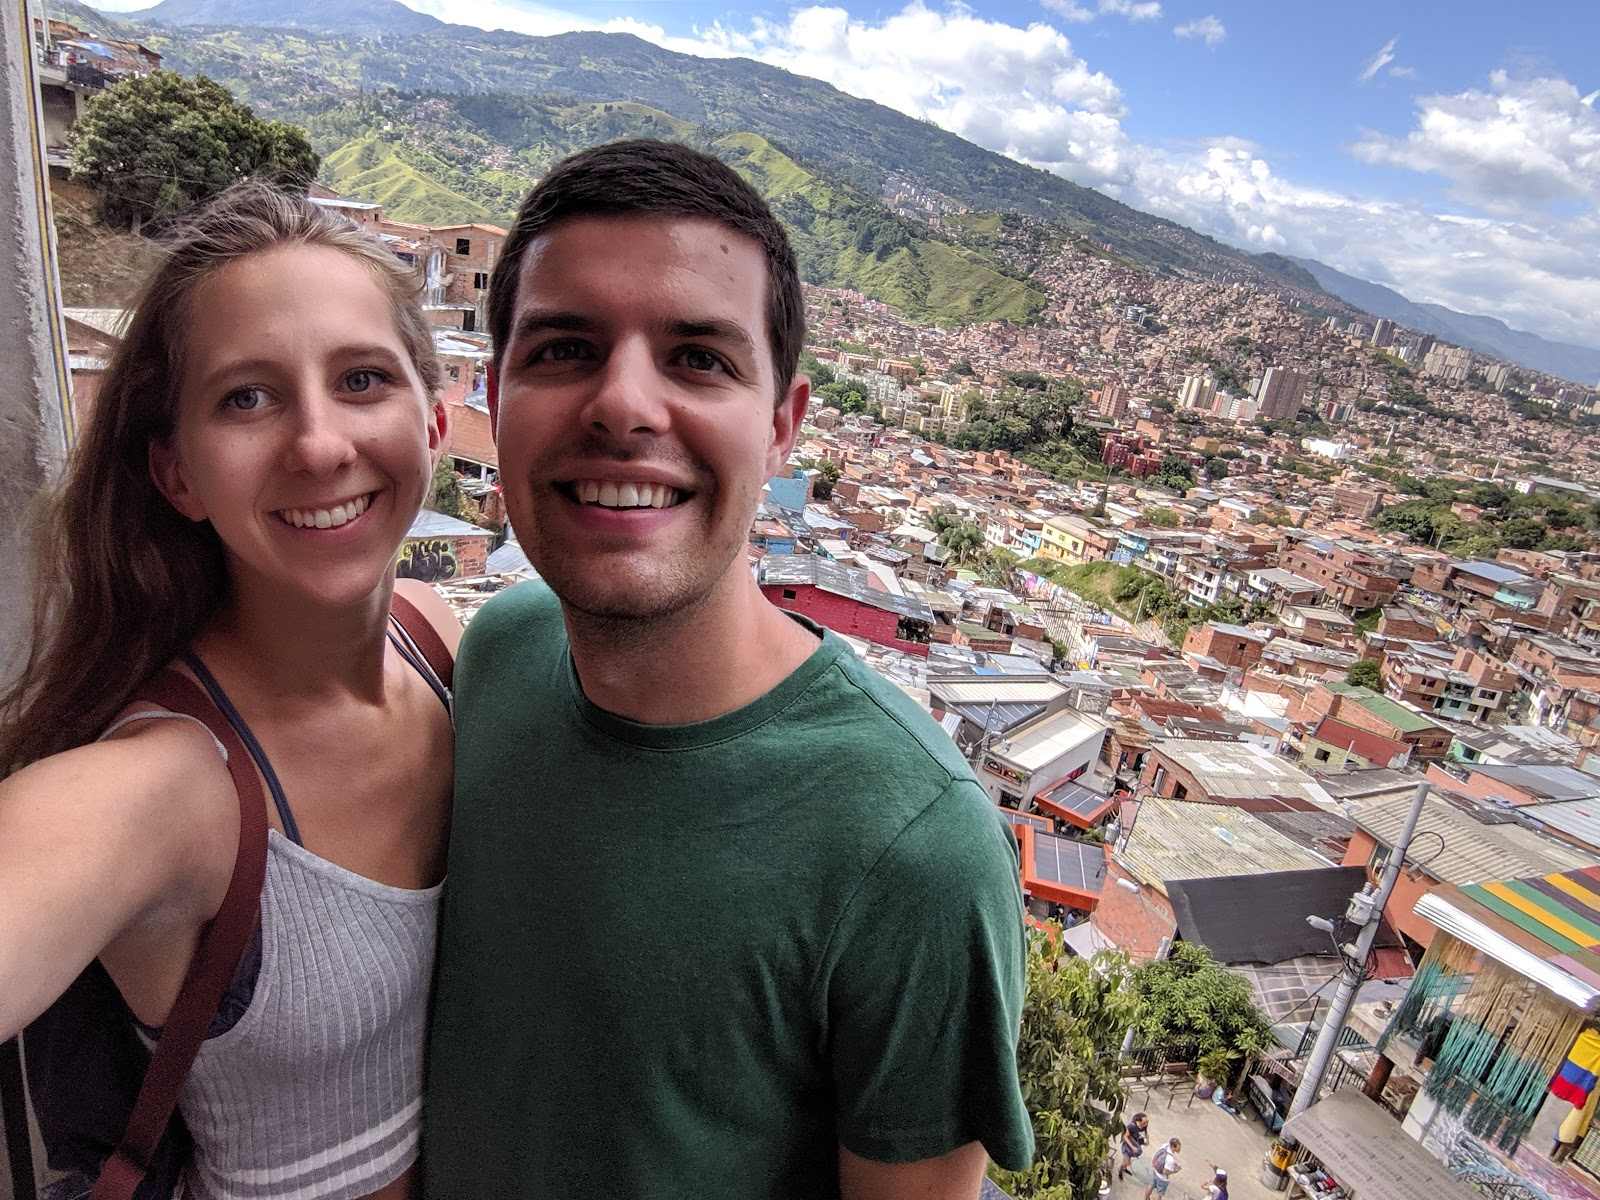 Brandon and Erin in Comuna 13 in Medellin, Colombia.